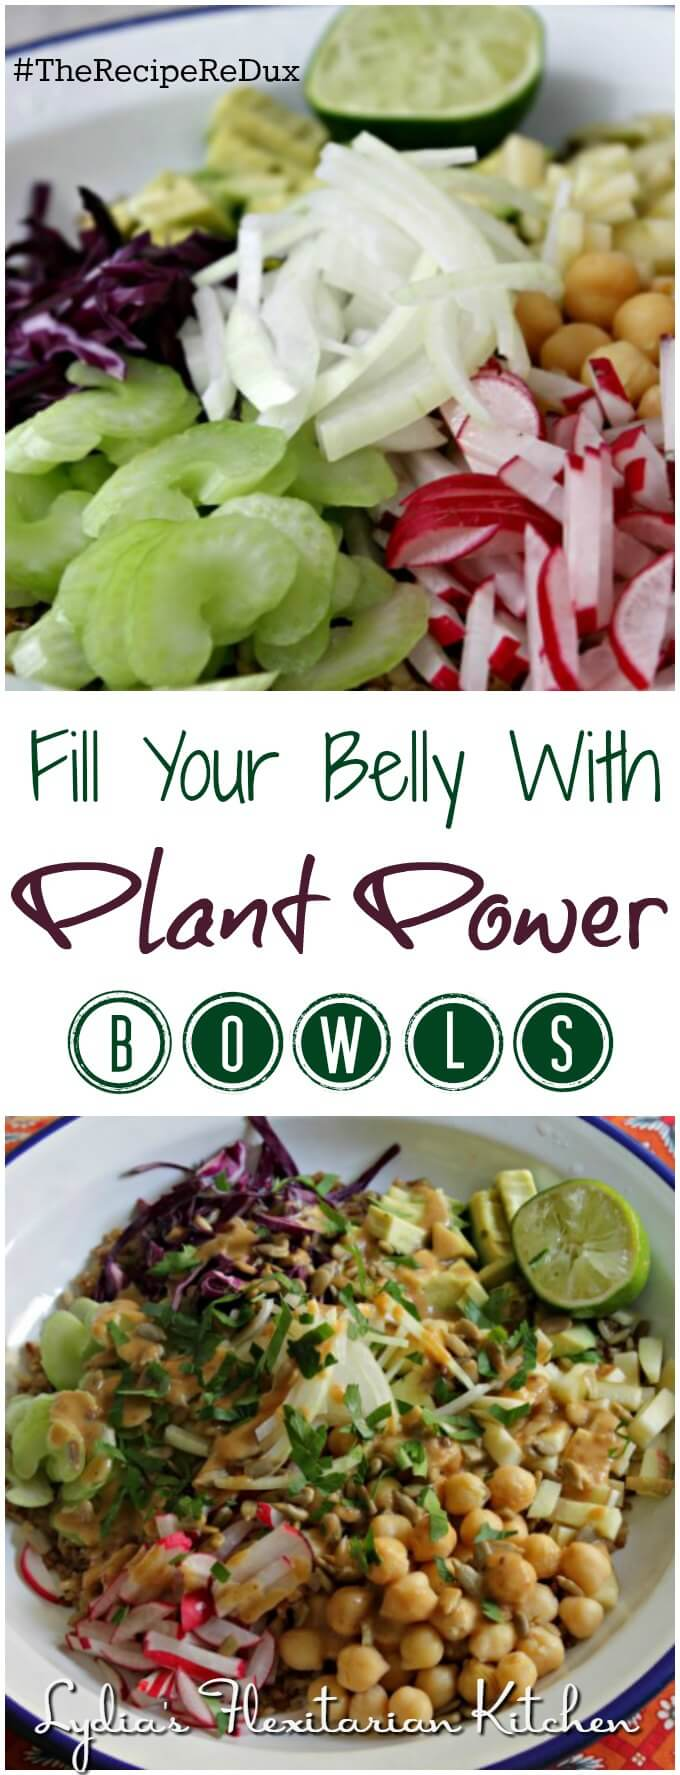 Fill Your Belly With Plant Power Bowls ~ #TheRecipeReDux ~ Lydia's Flexitarian Kitchen